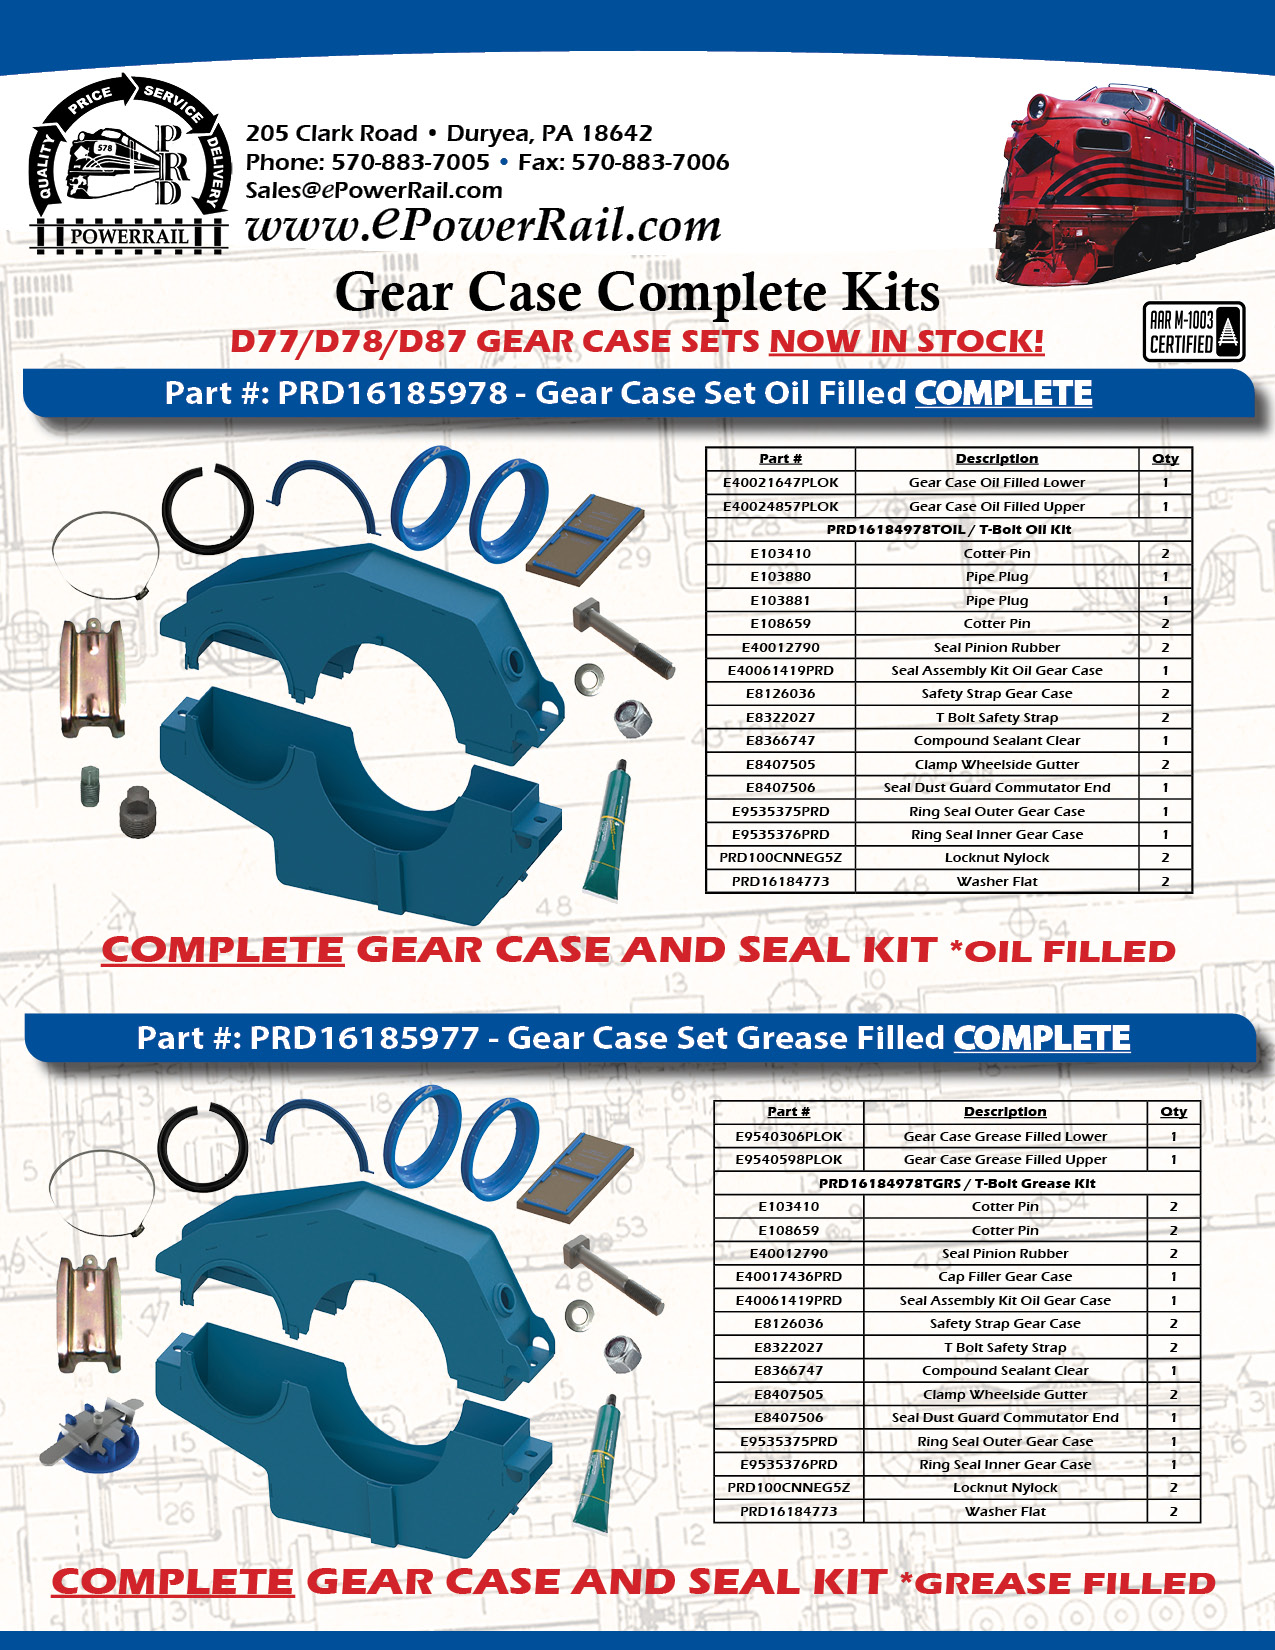 PowerRail's PowerLok Gear Case Kits and Install Kits